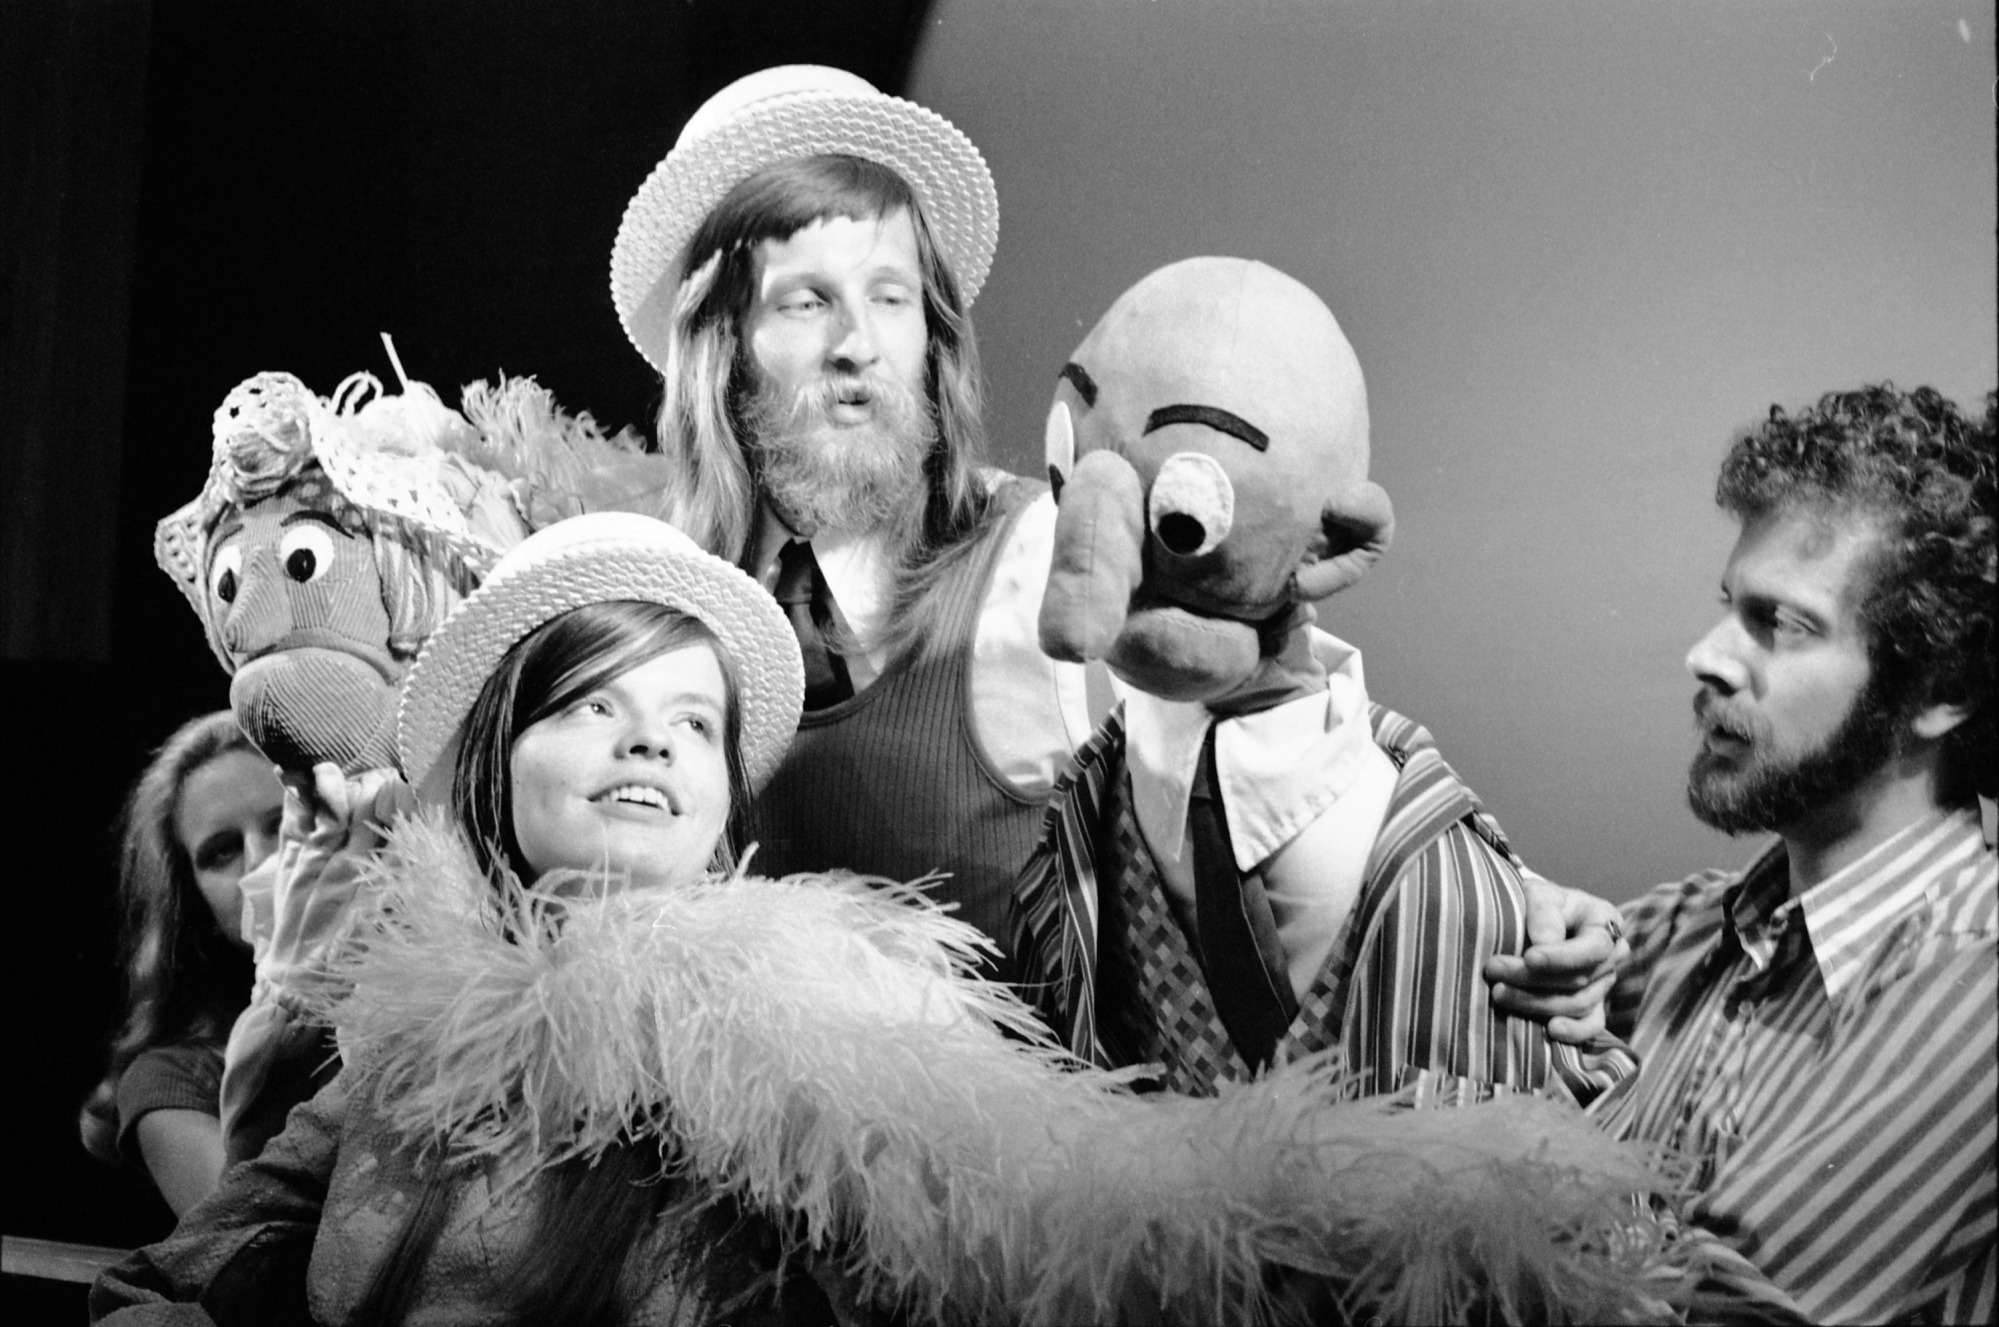 Puppet Theater, 1972, Smithsonian Institution Archives, SIA Acc. 11-009 [72-8376-21].